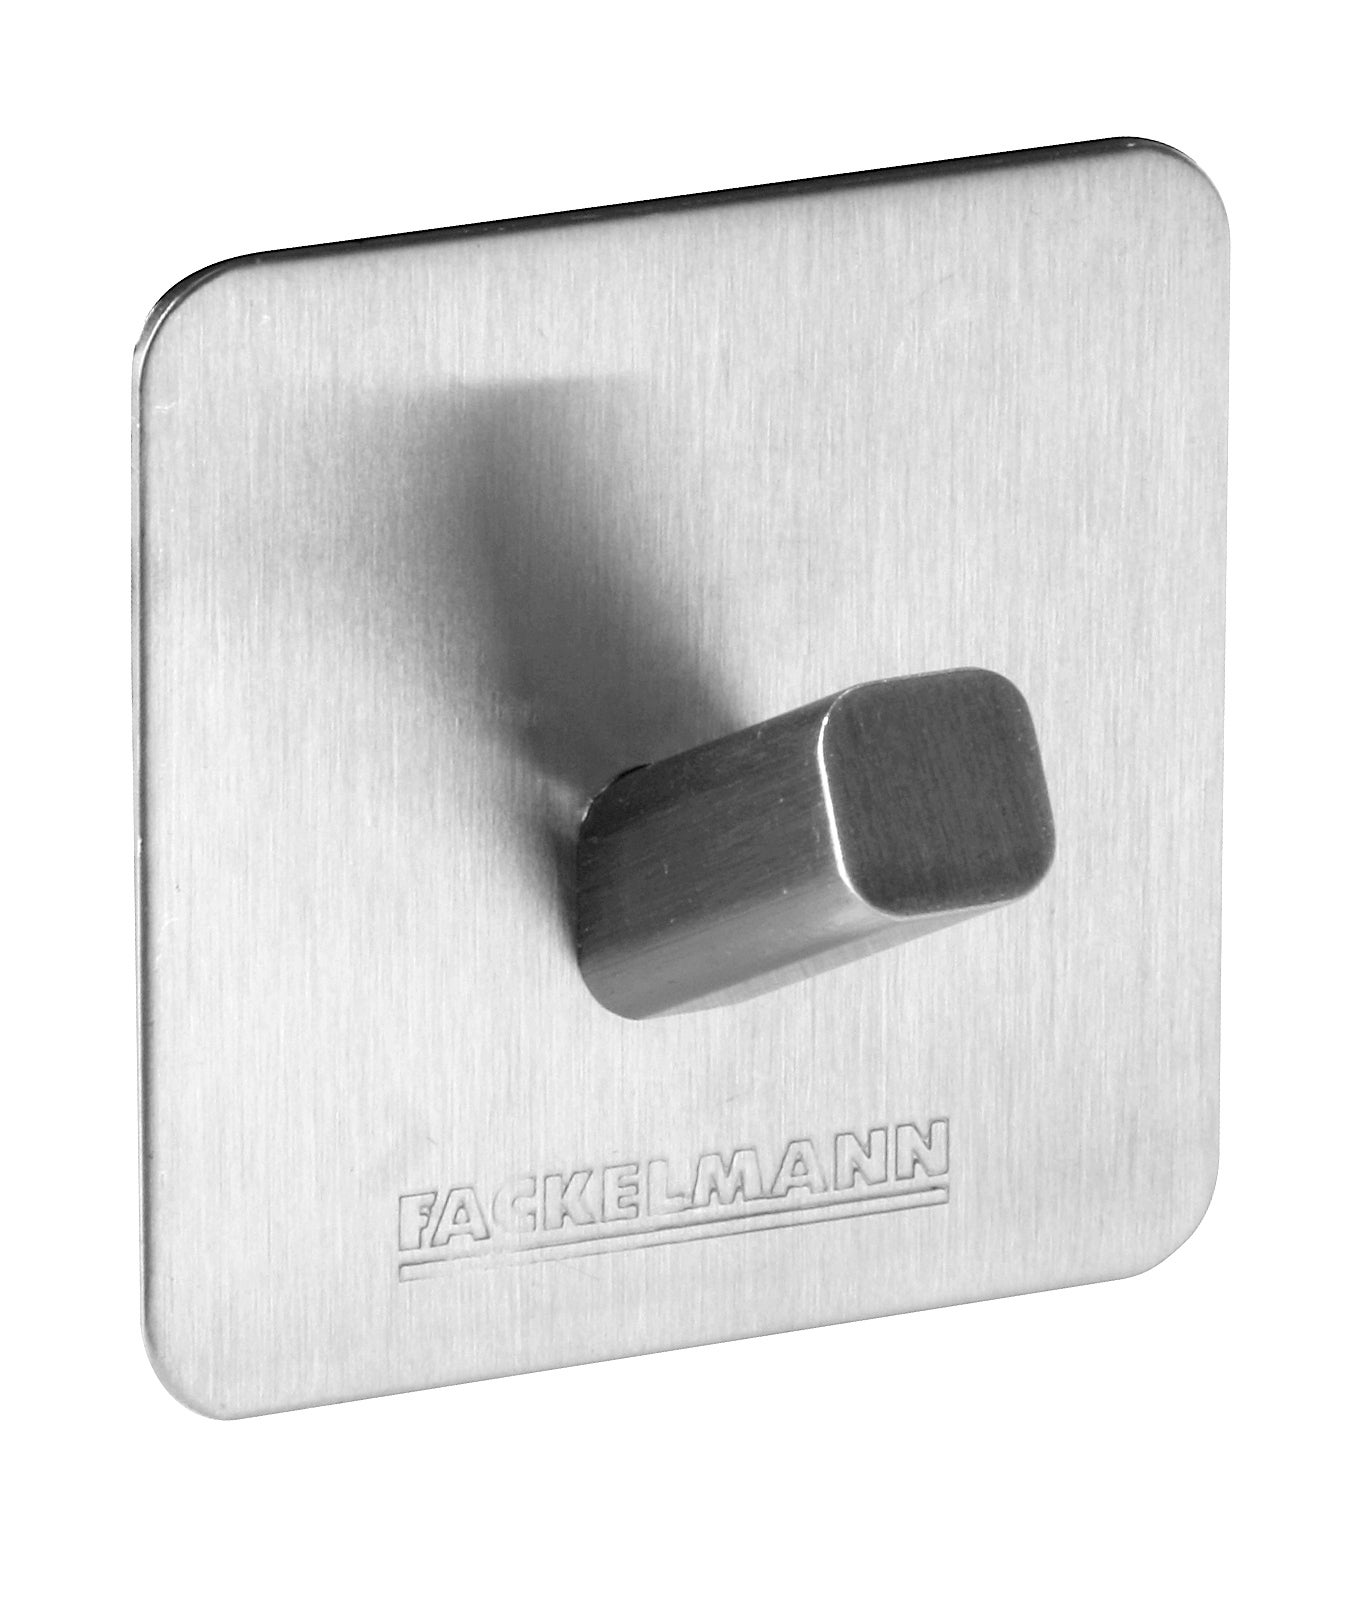 Stainless Steel Square Adhesive Storage Hook